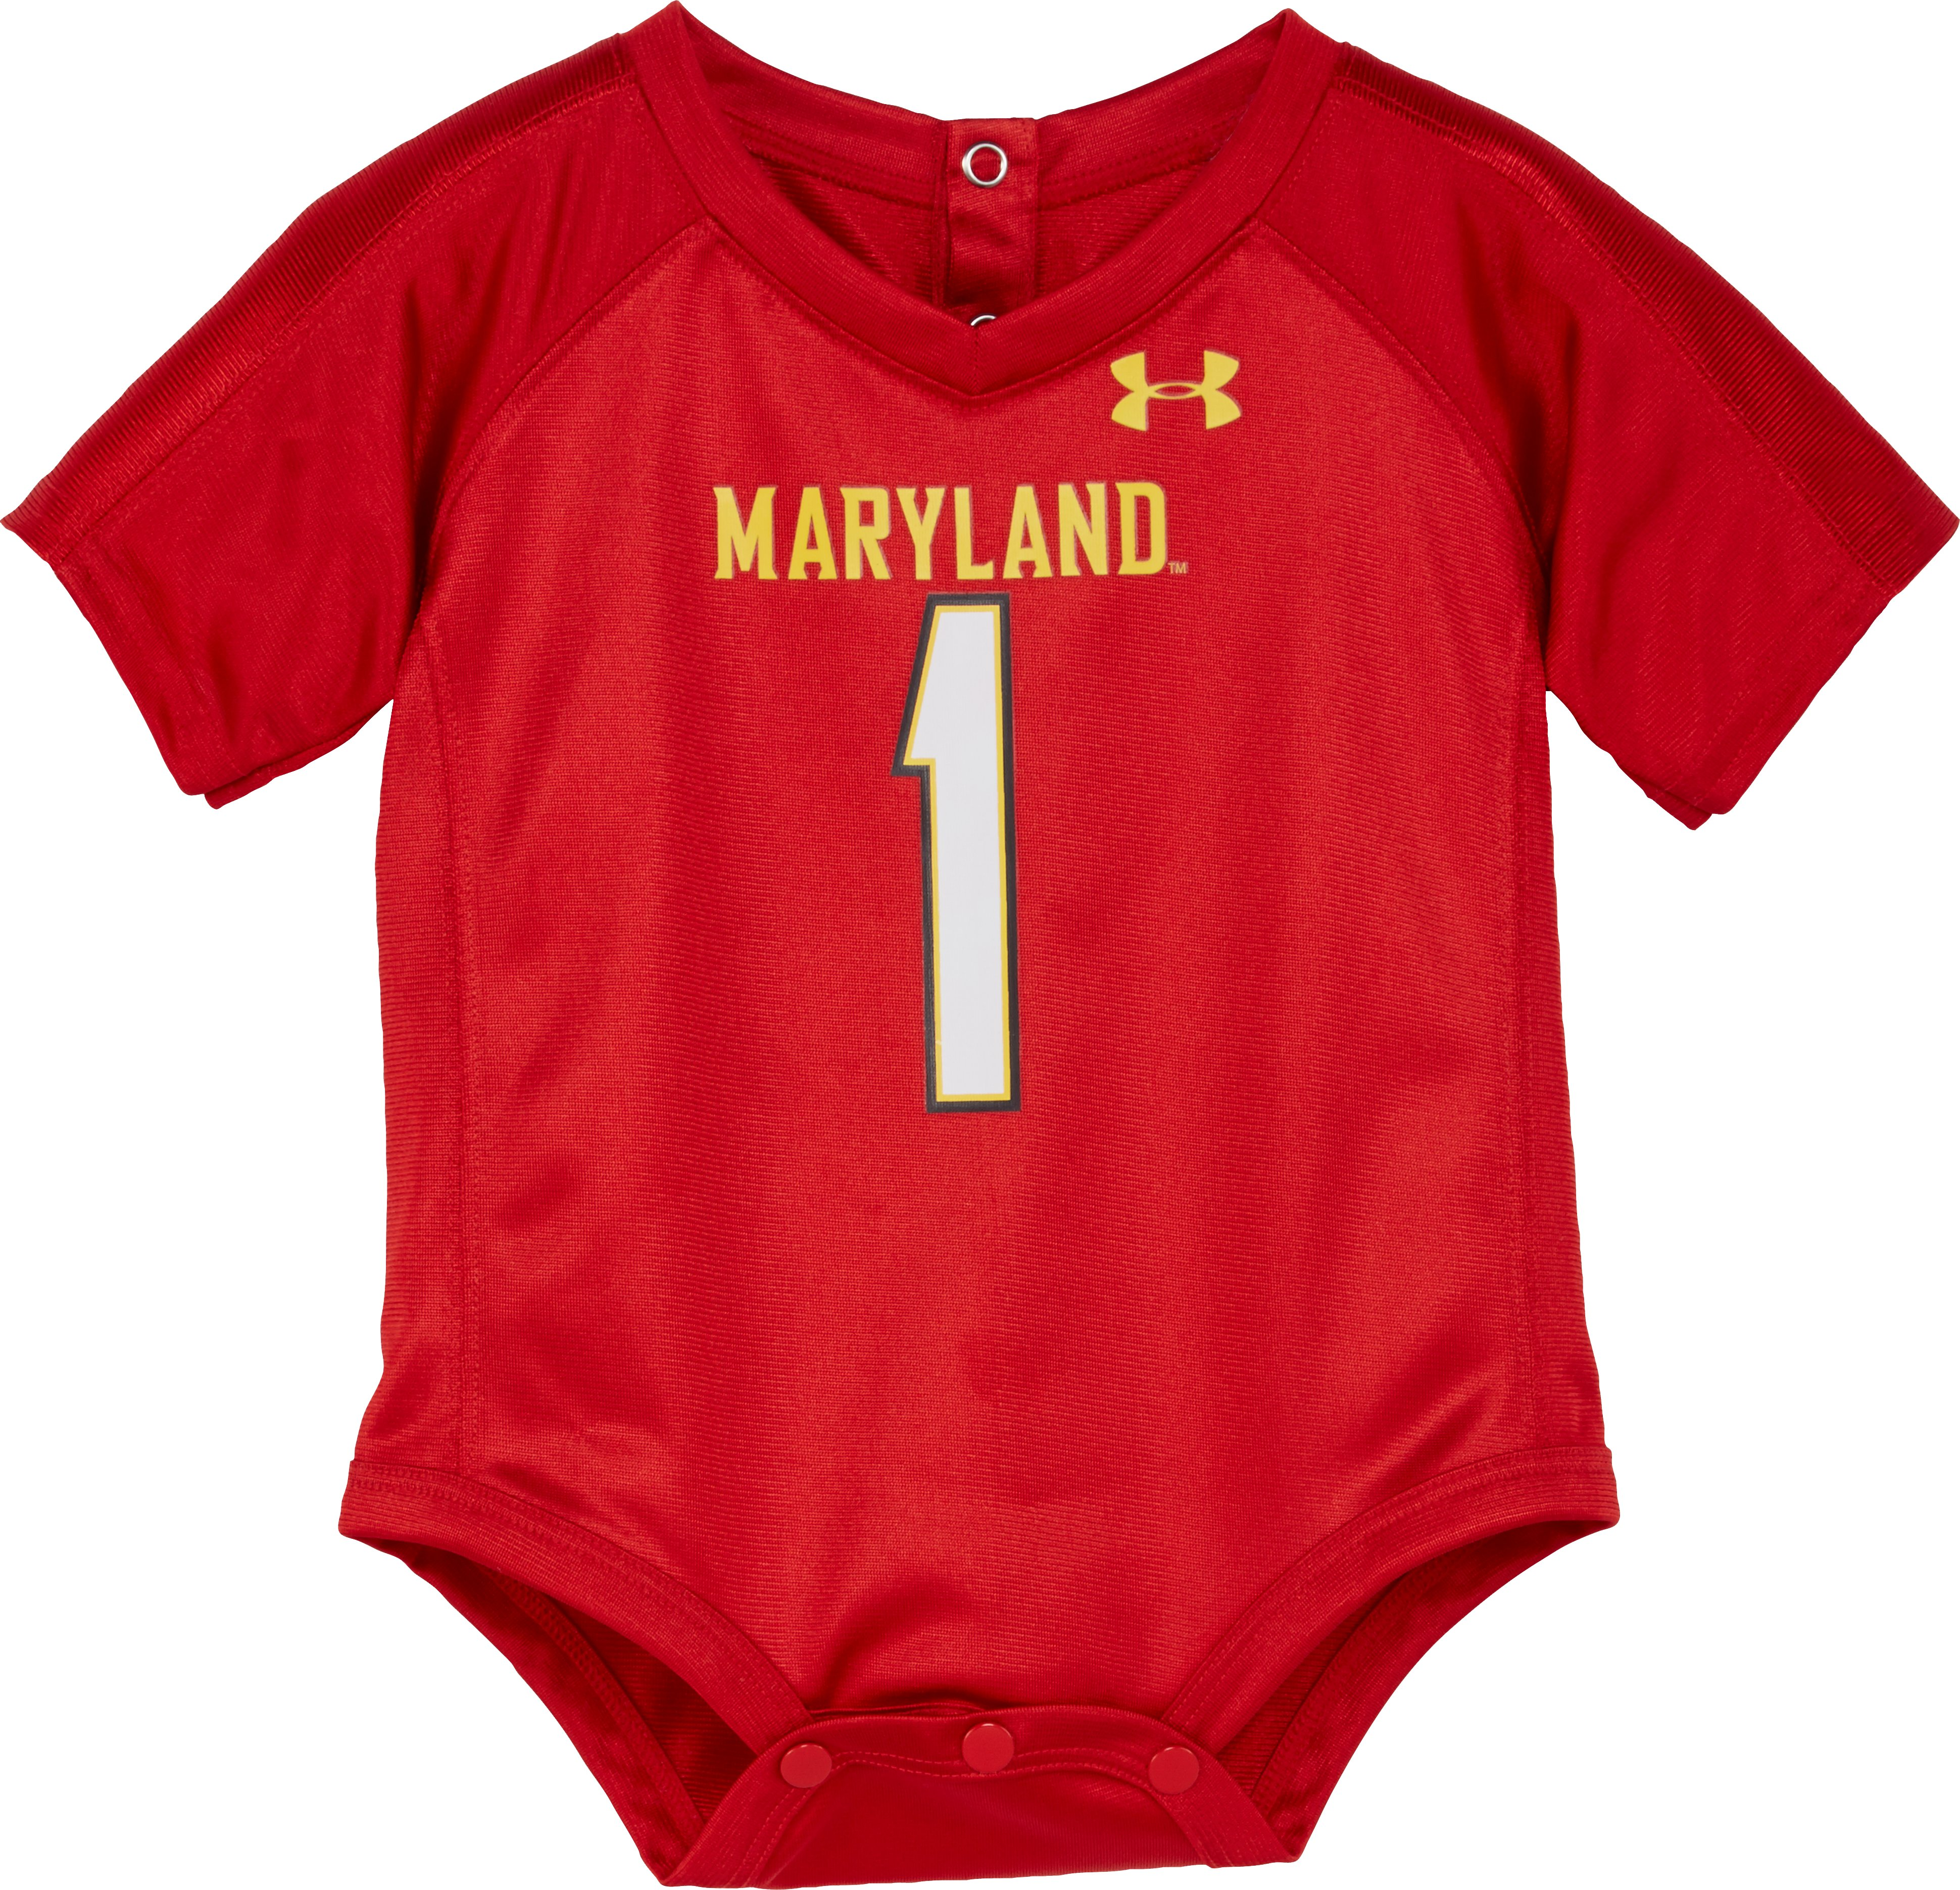 Boys' Newborn Maryland Replica Jersey Bodysuit, Red, zoomed image